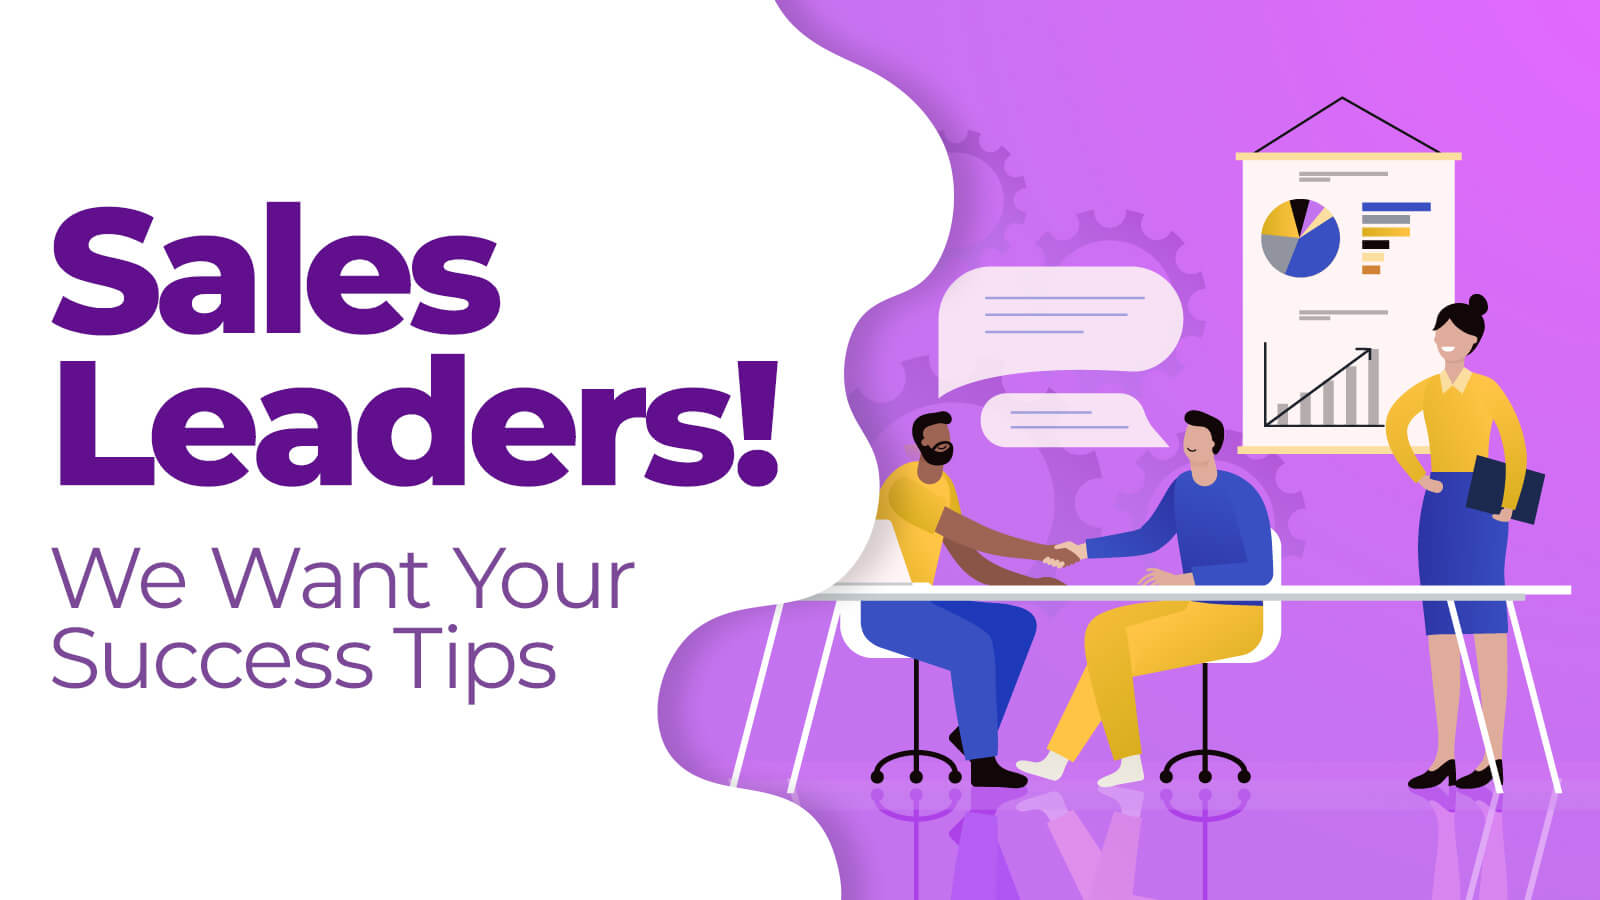 100 Sales Leaders tips for Success